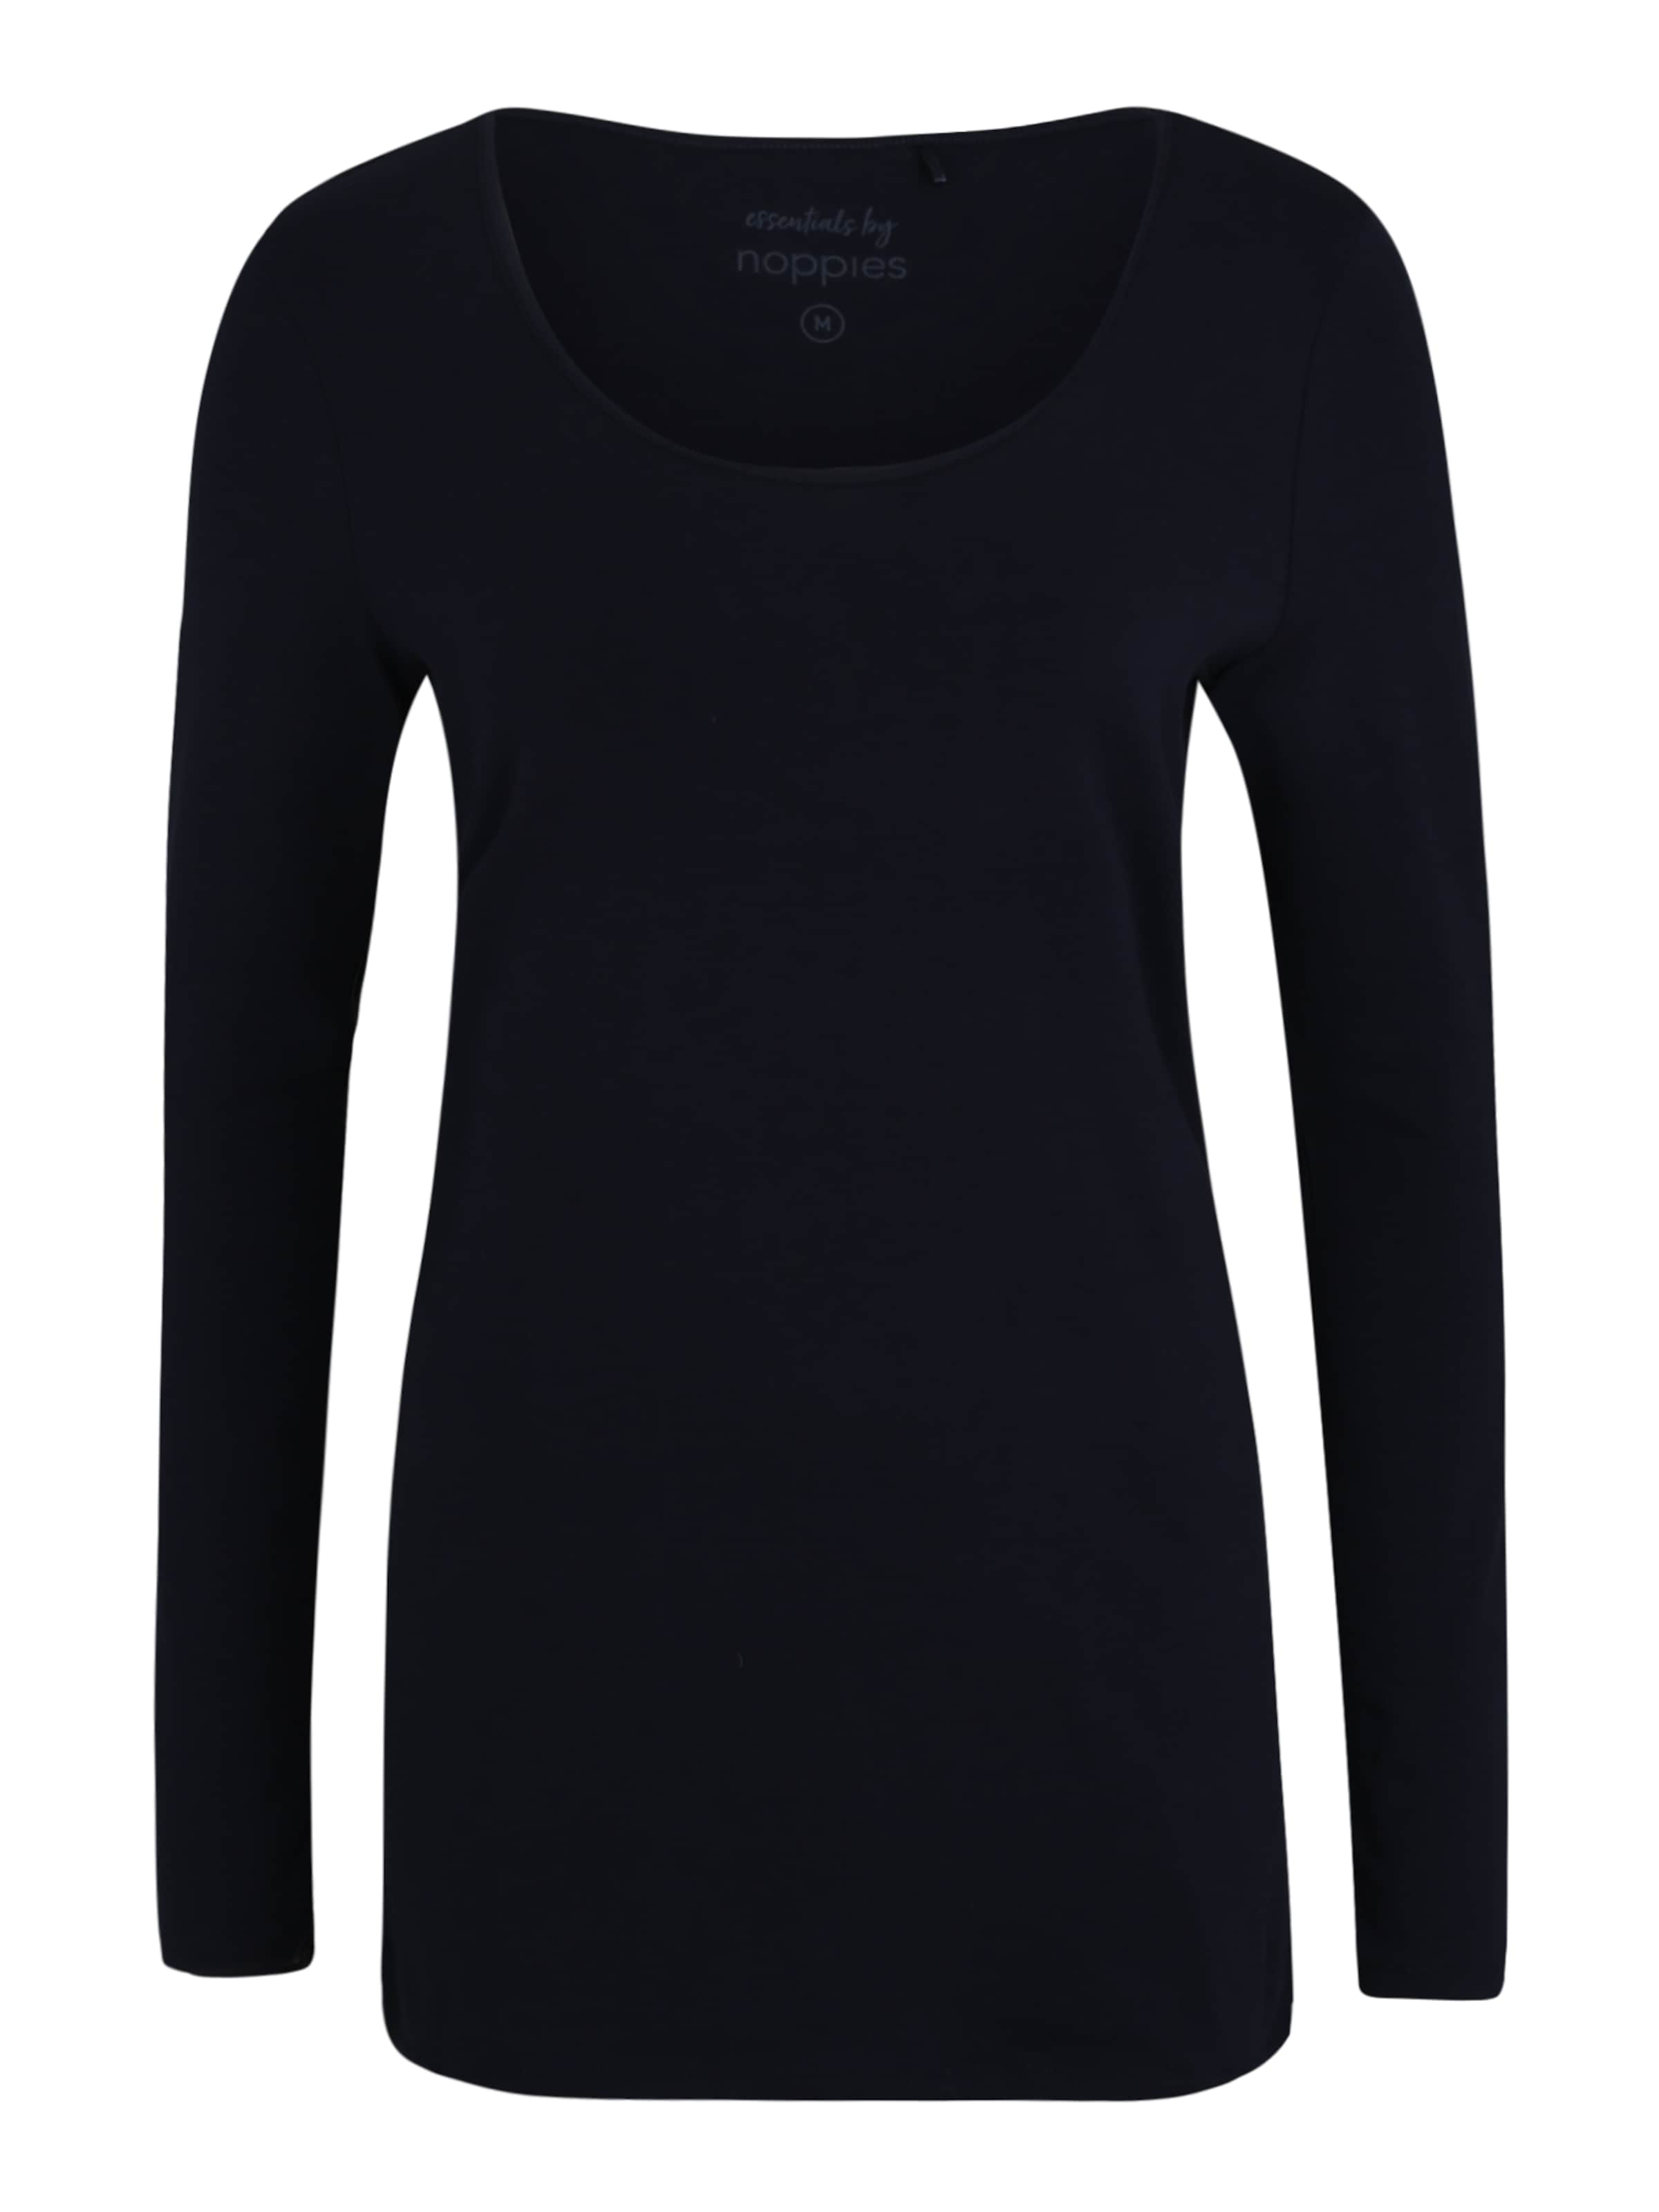 'berlin' Noppies shirt T Bleu En Nuit dxhQtCsBr